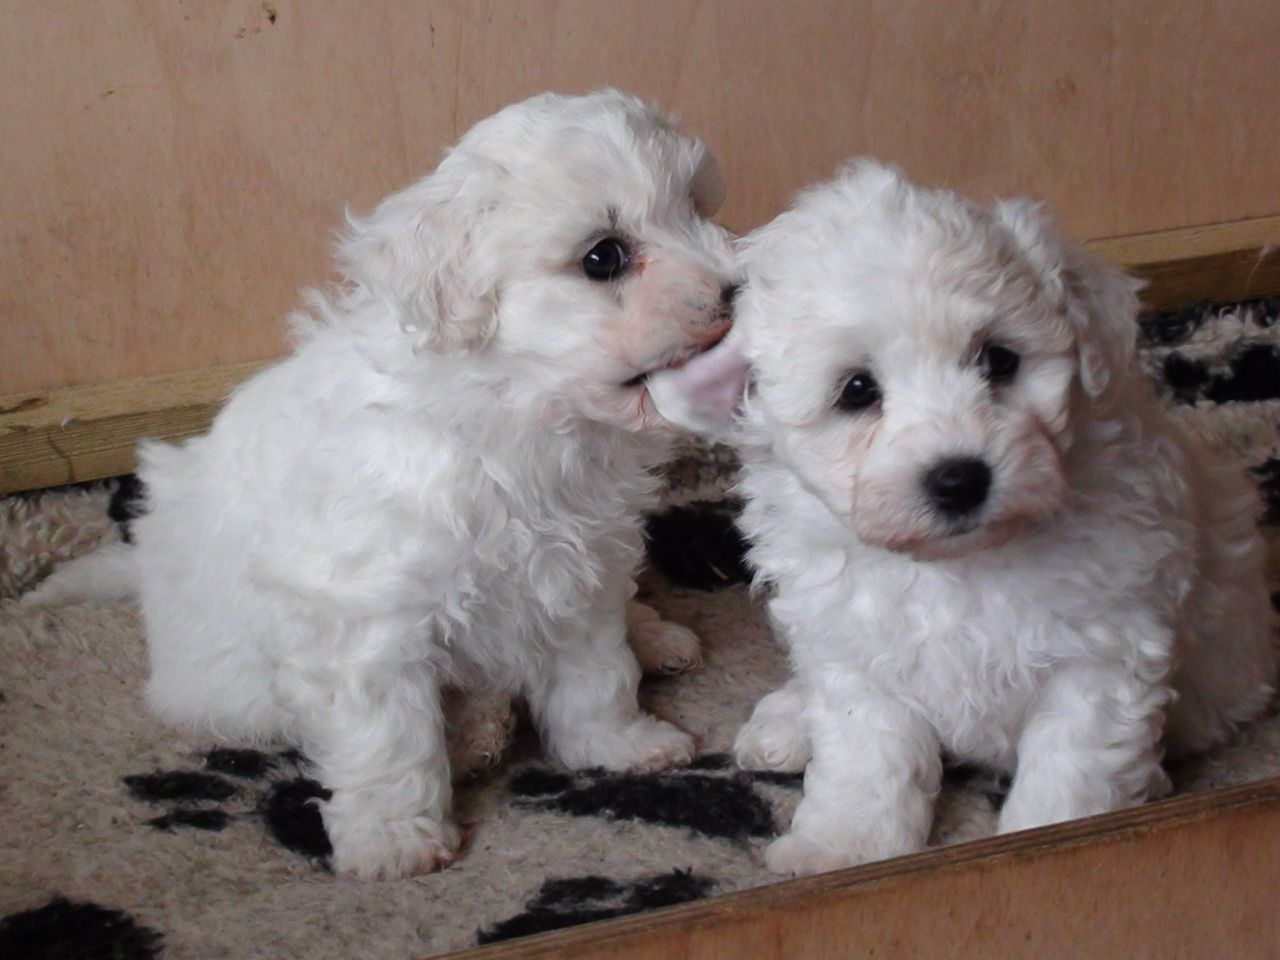 Adorable Bichon Frise Puppies. For more cute puppies